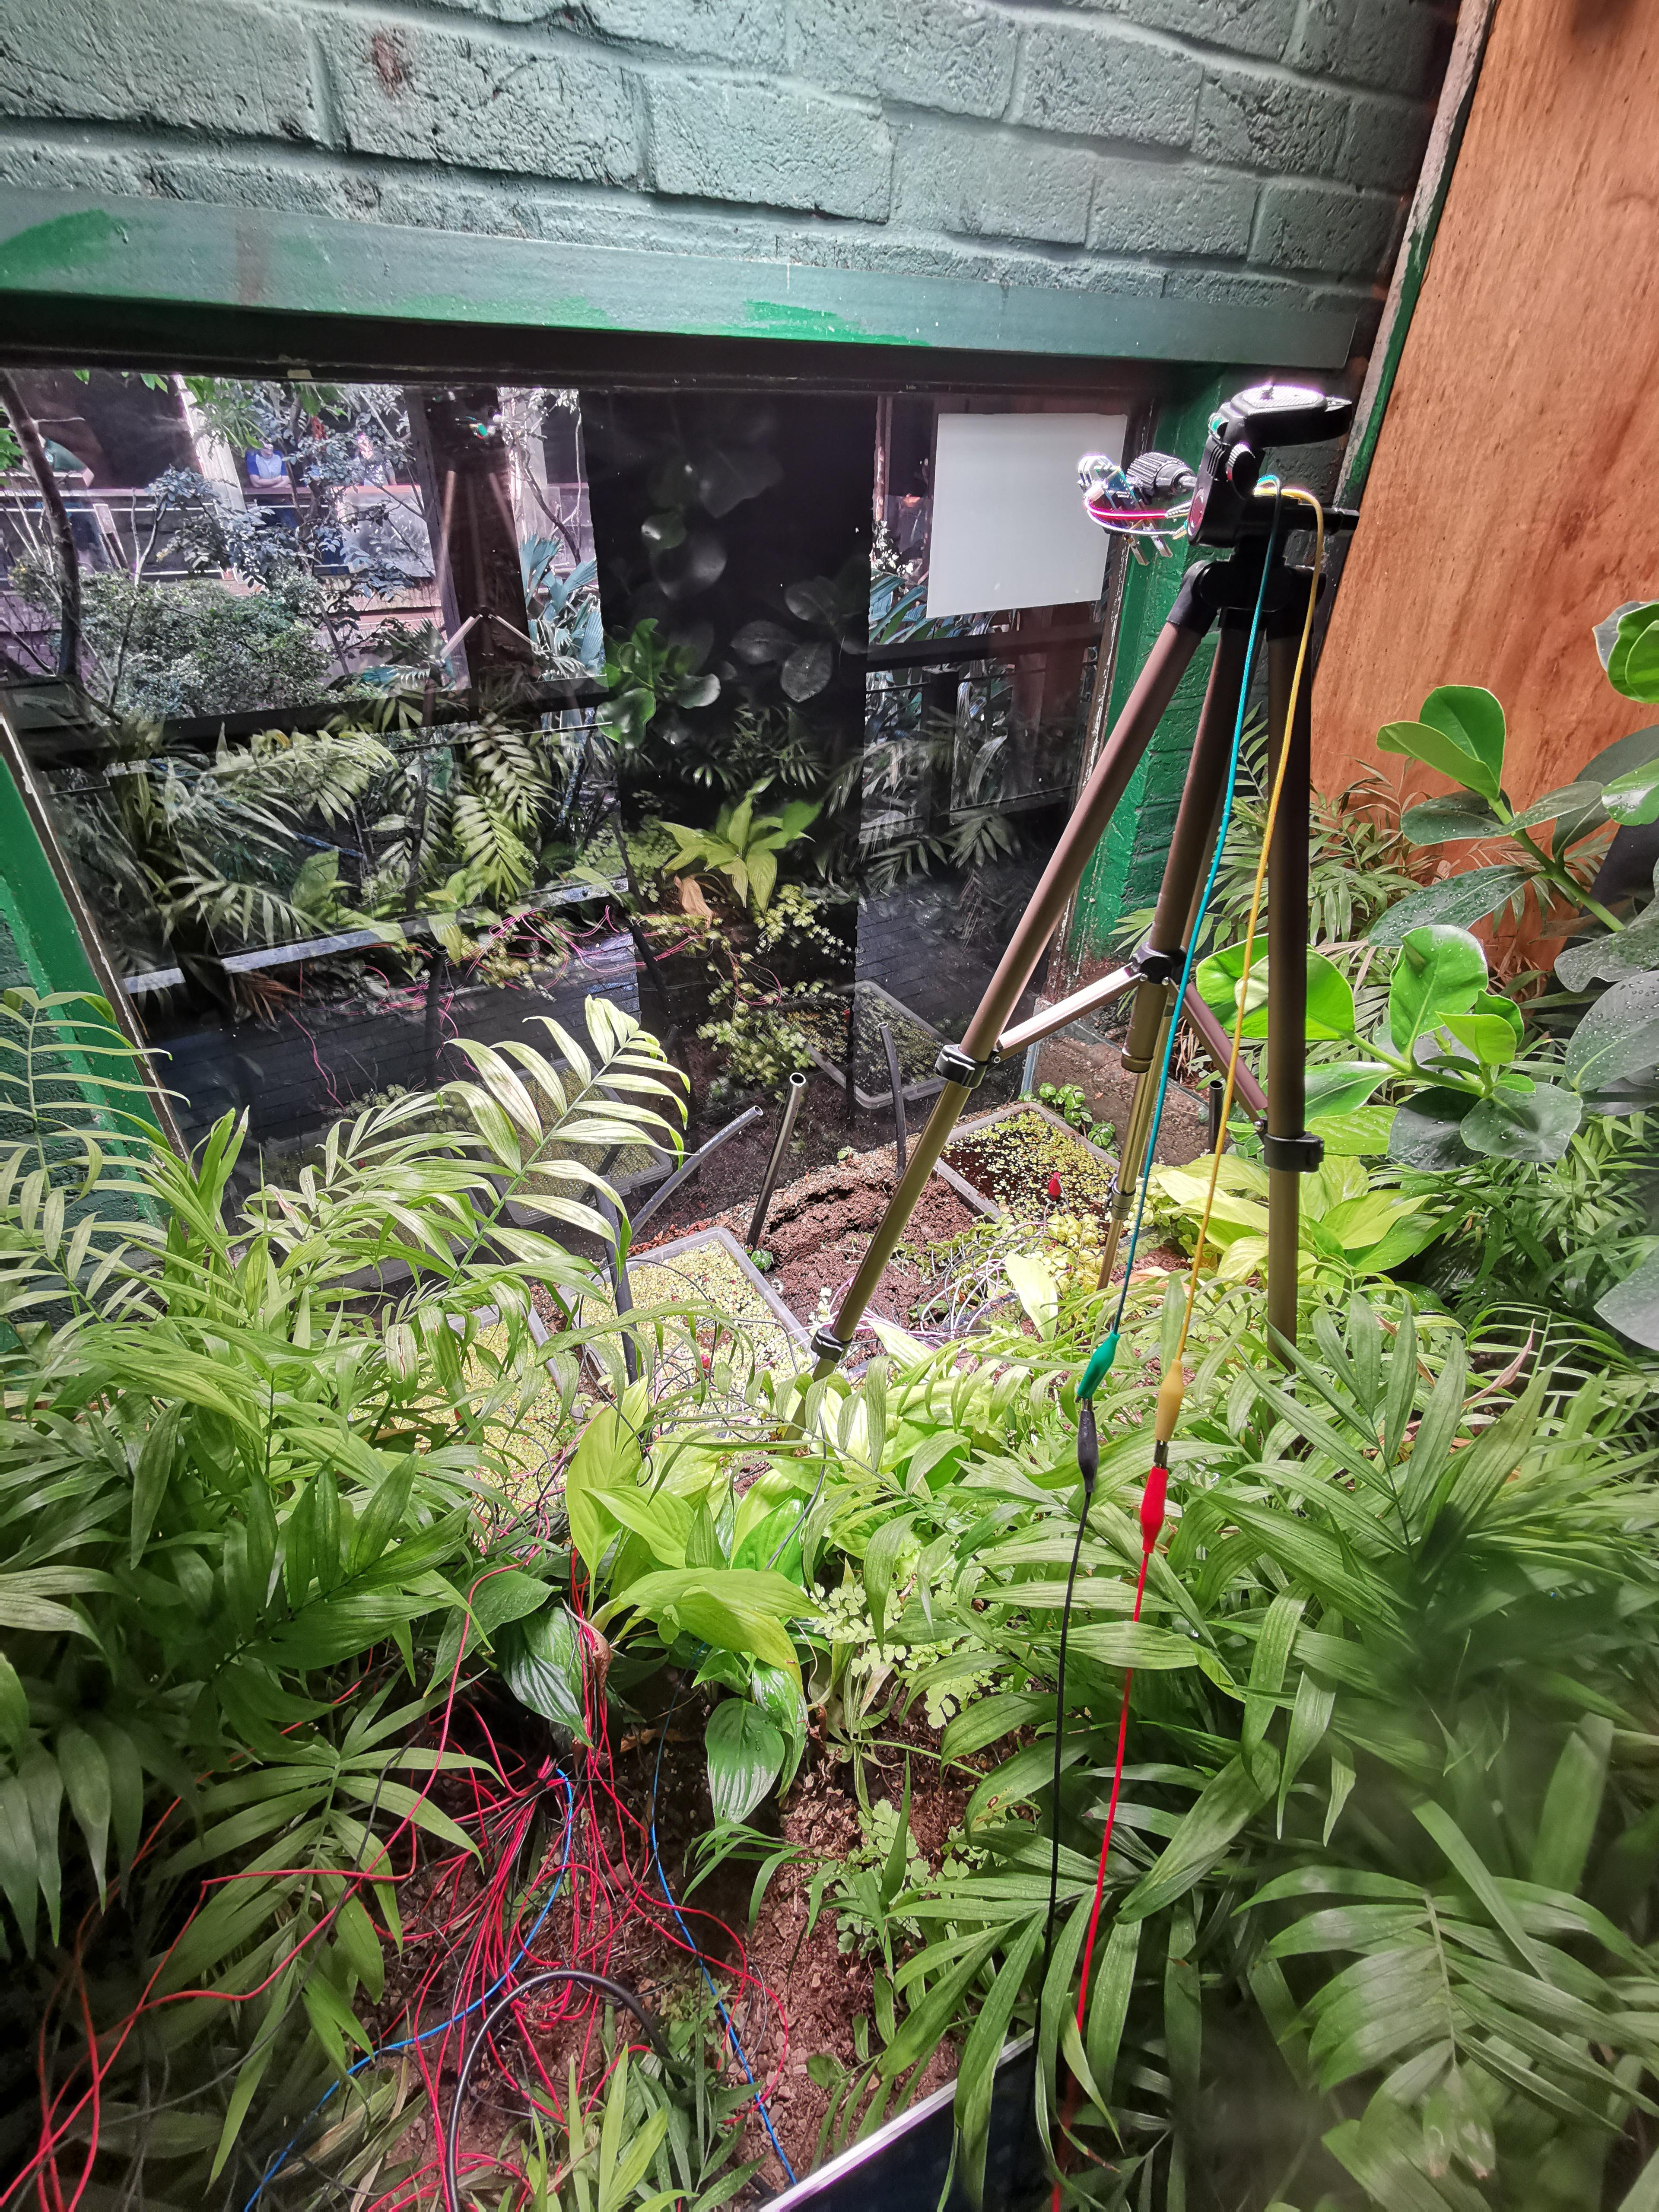 A visitor to ZSL's Rainforest Live gazes through the window at Plant-E's microbial fuel cells and Xnor.ai's energy harvesting camera